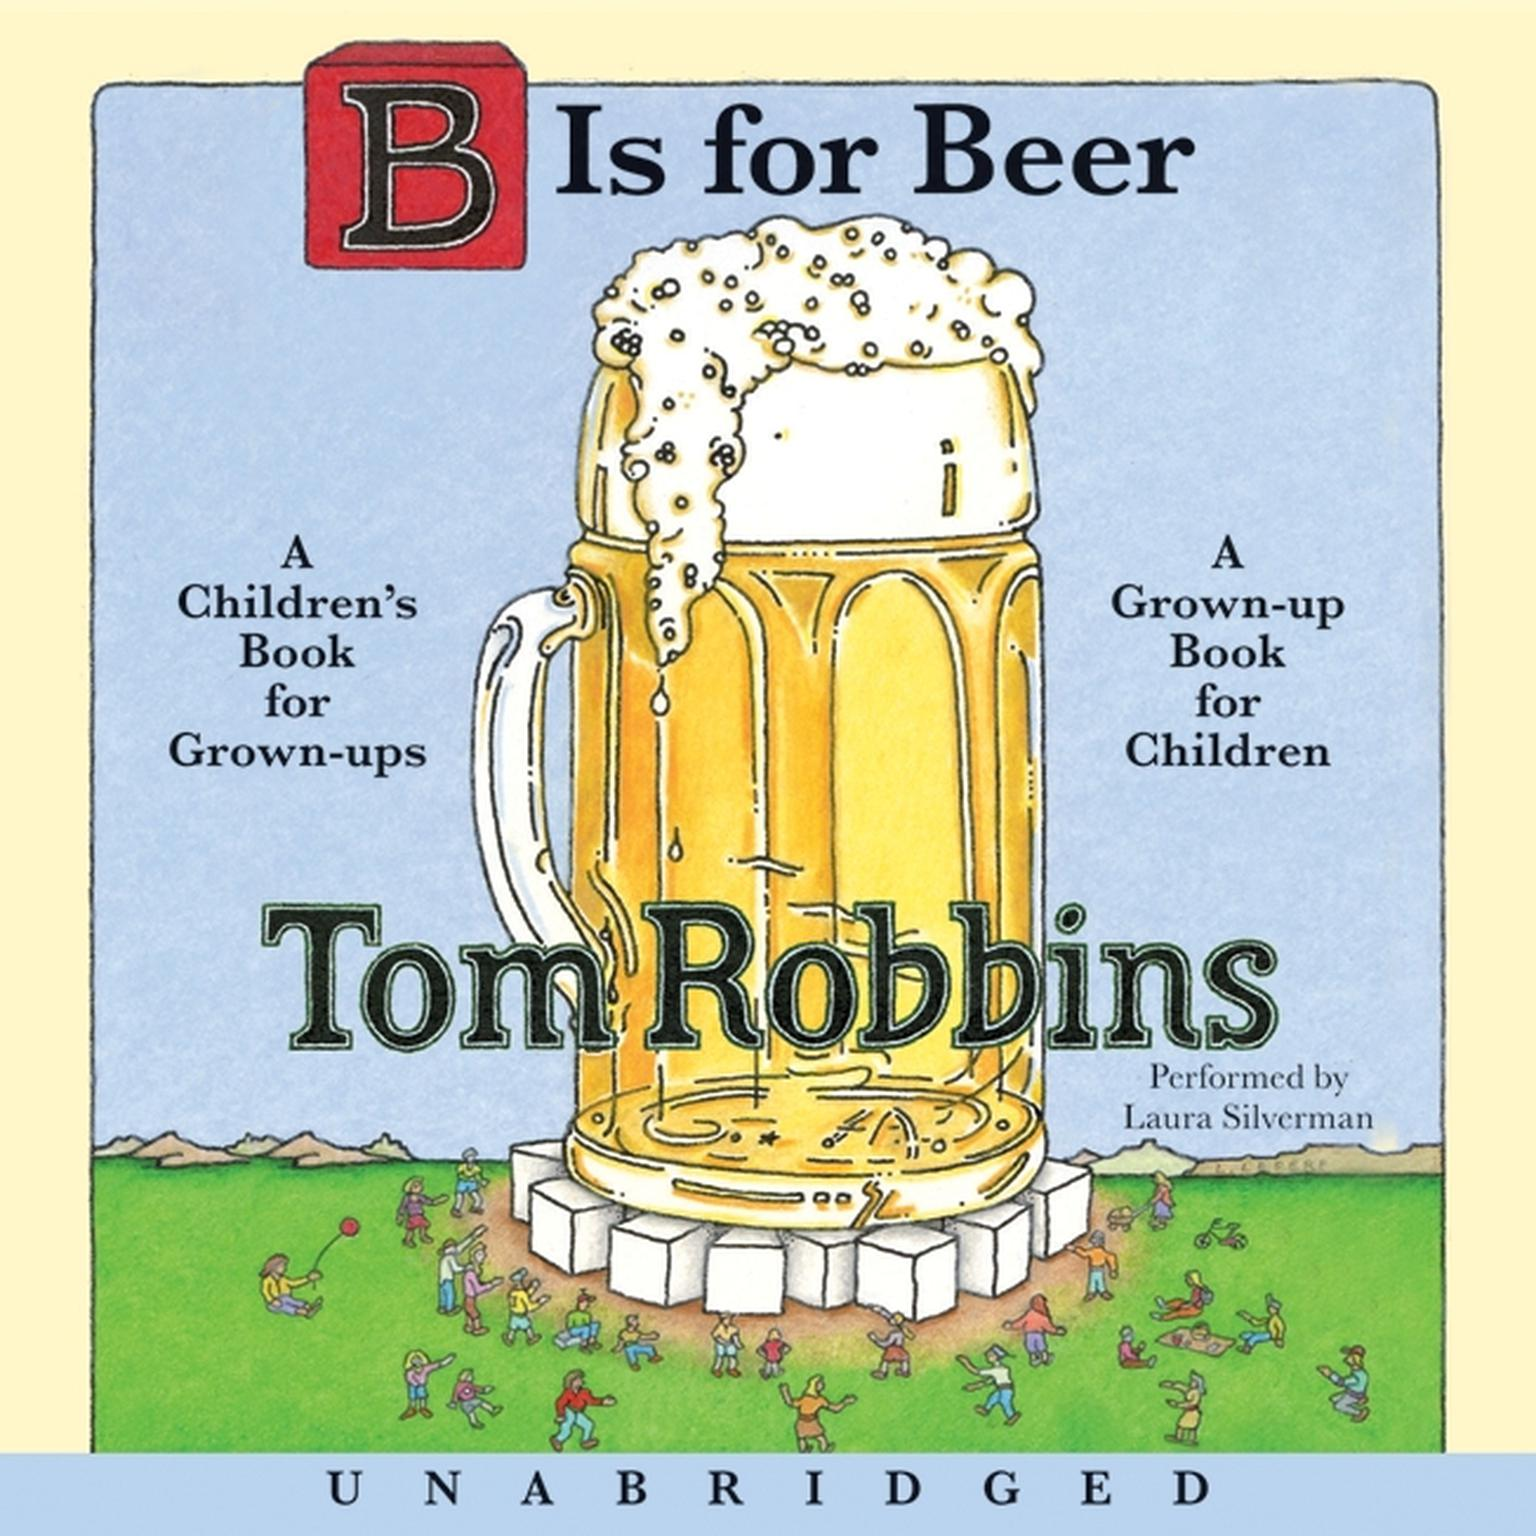 9a14367e0 B is for Beer - Audiobook